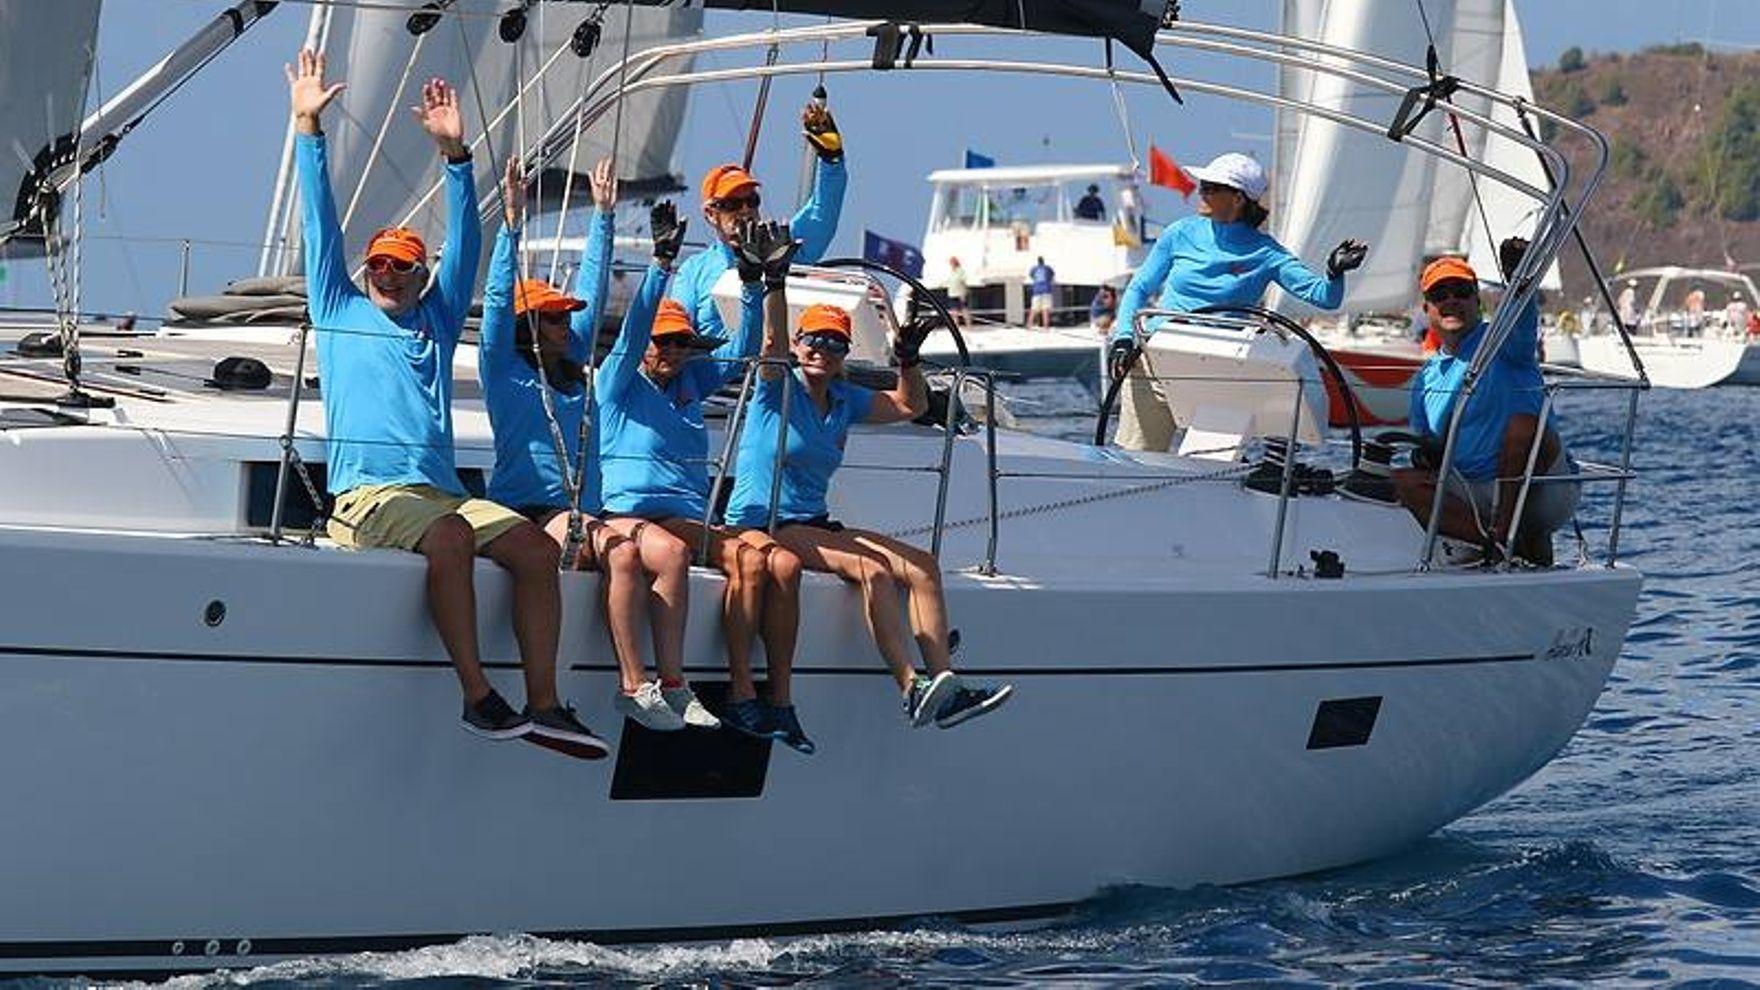 The BVI Spring Regatta & Sailing Festival 2021